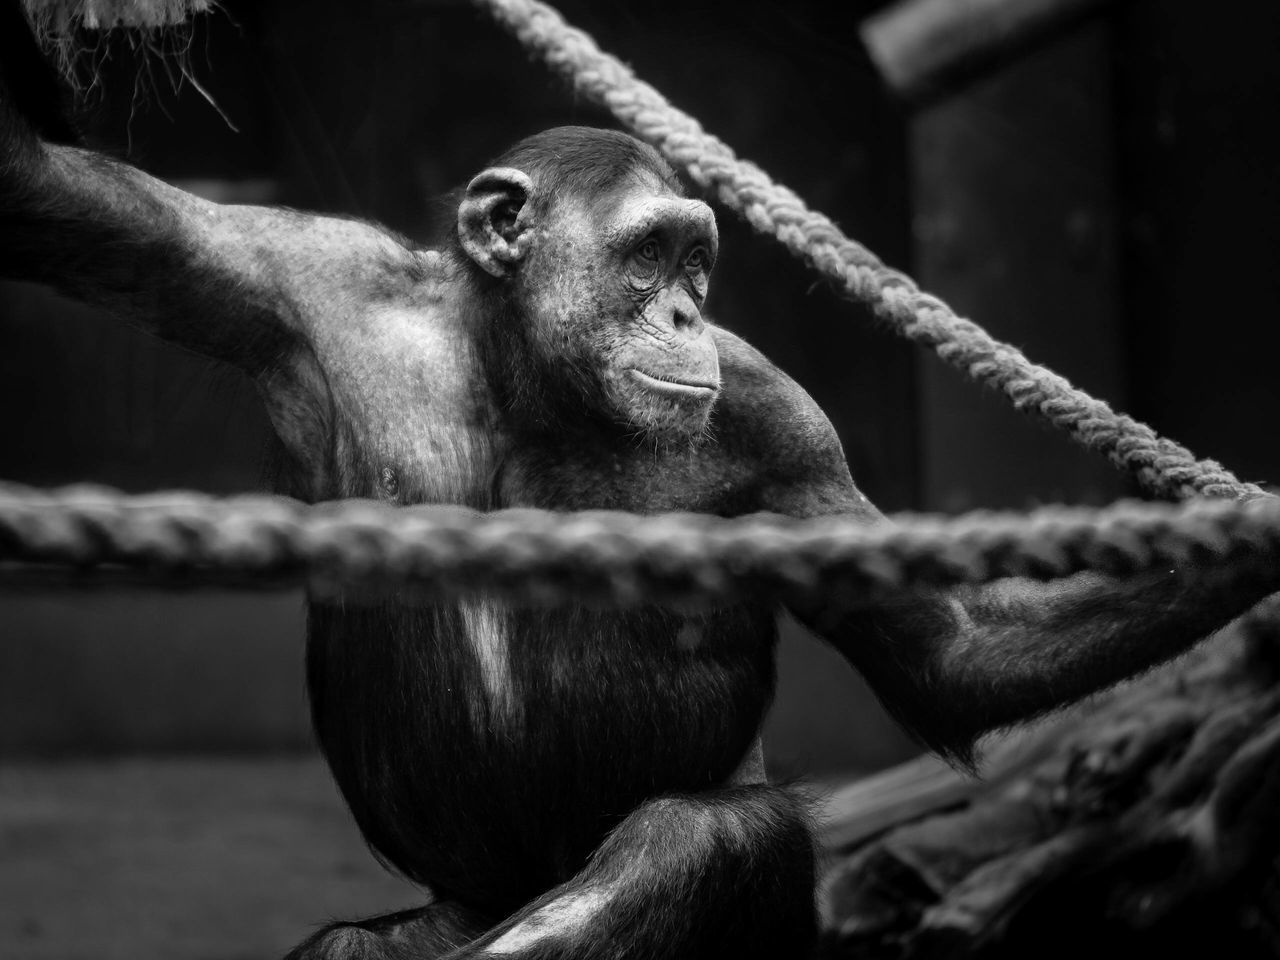 Monkeys Affe Affen Monkey Face Monkey Portrait Animals Zoo Animals  Zoo Animal Photography Monkey Love Battle Of The Cities Magdeburg Monochrome Photography Frame It! Layers And Textures